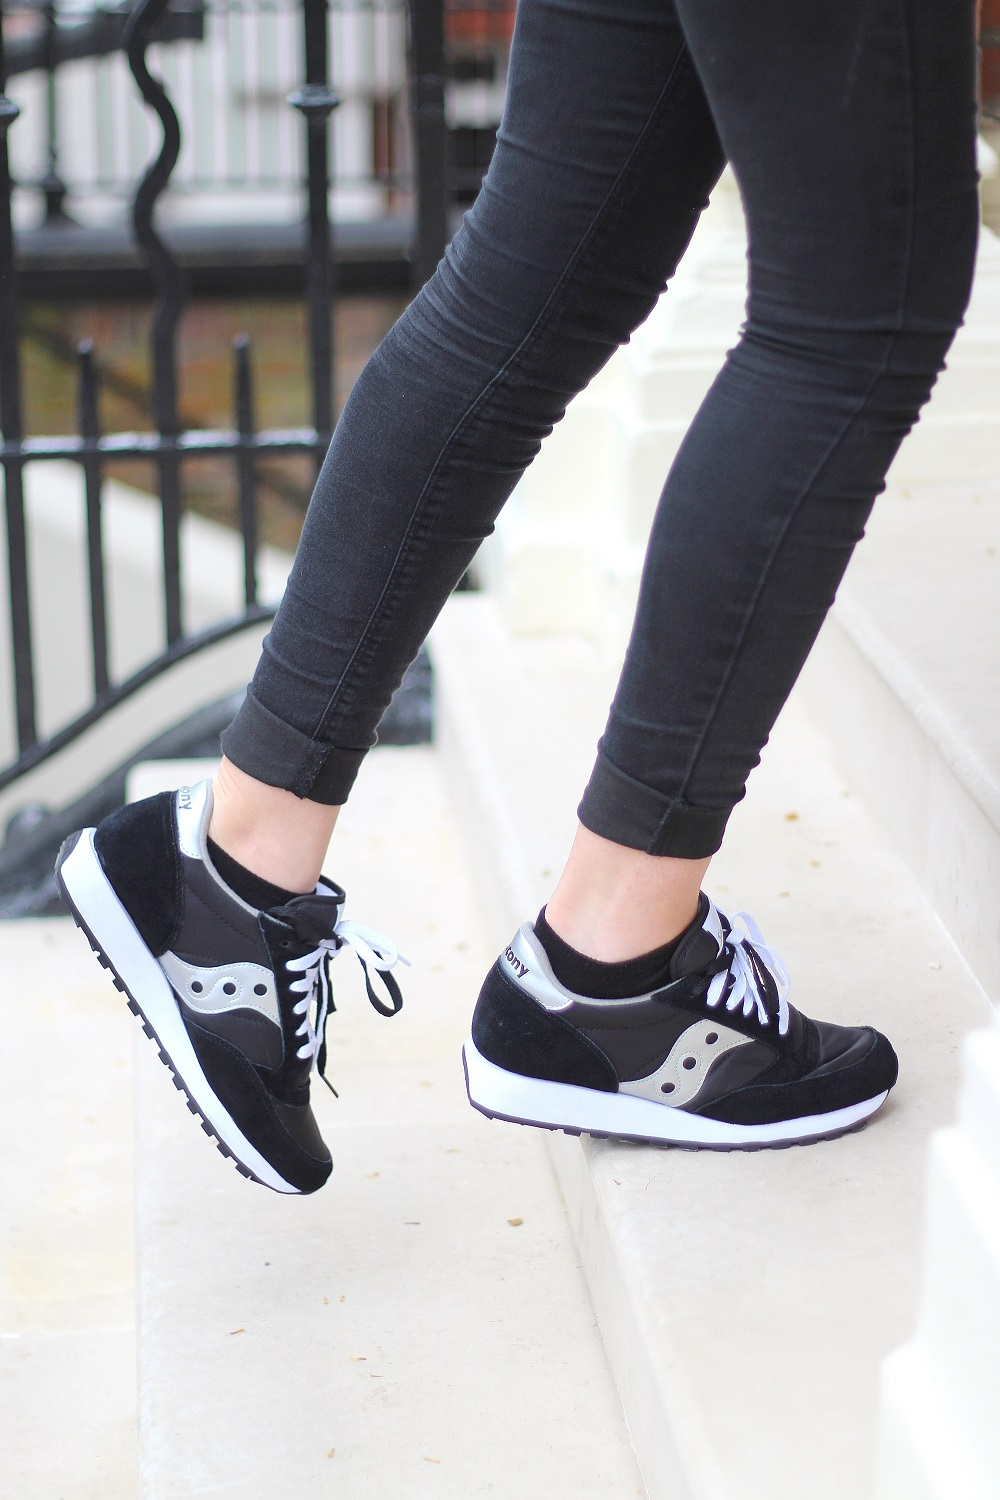 My Current Obsession with Trainers